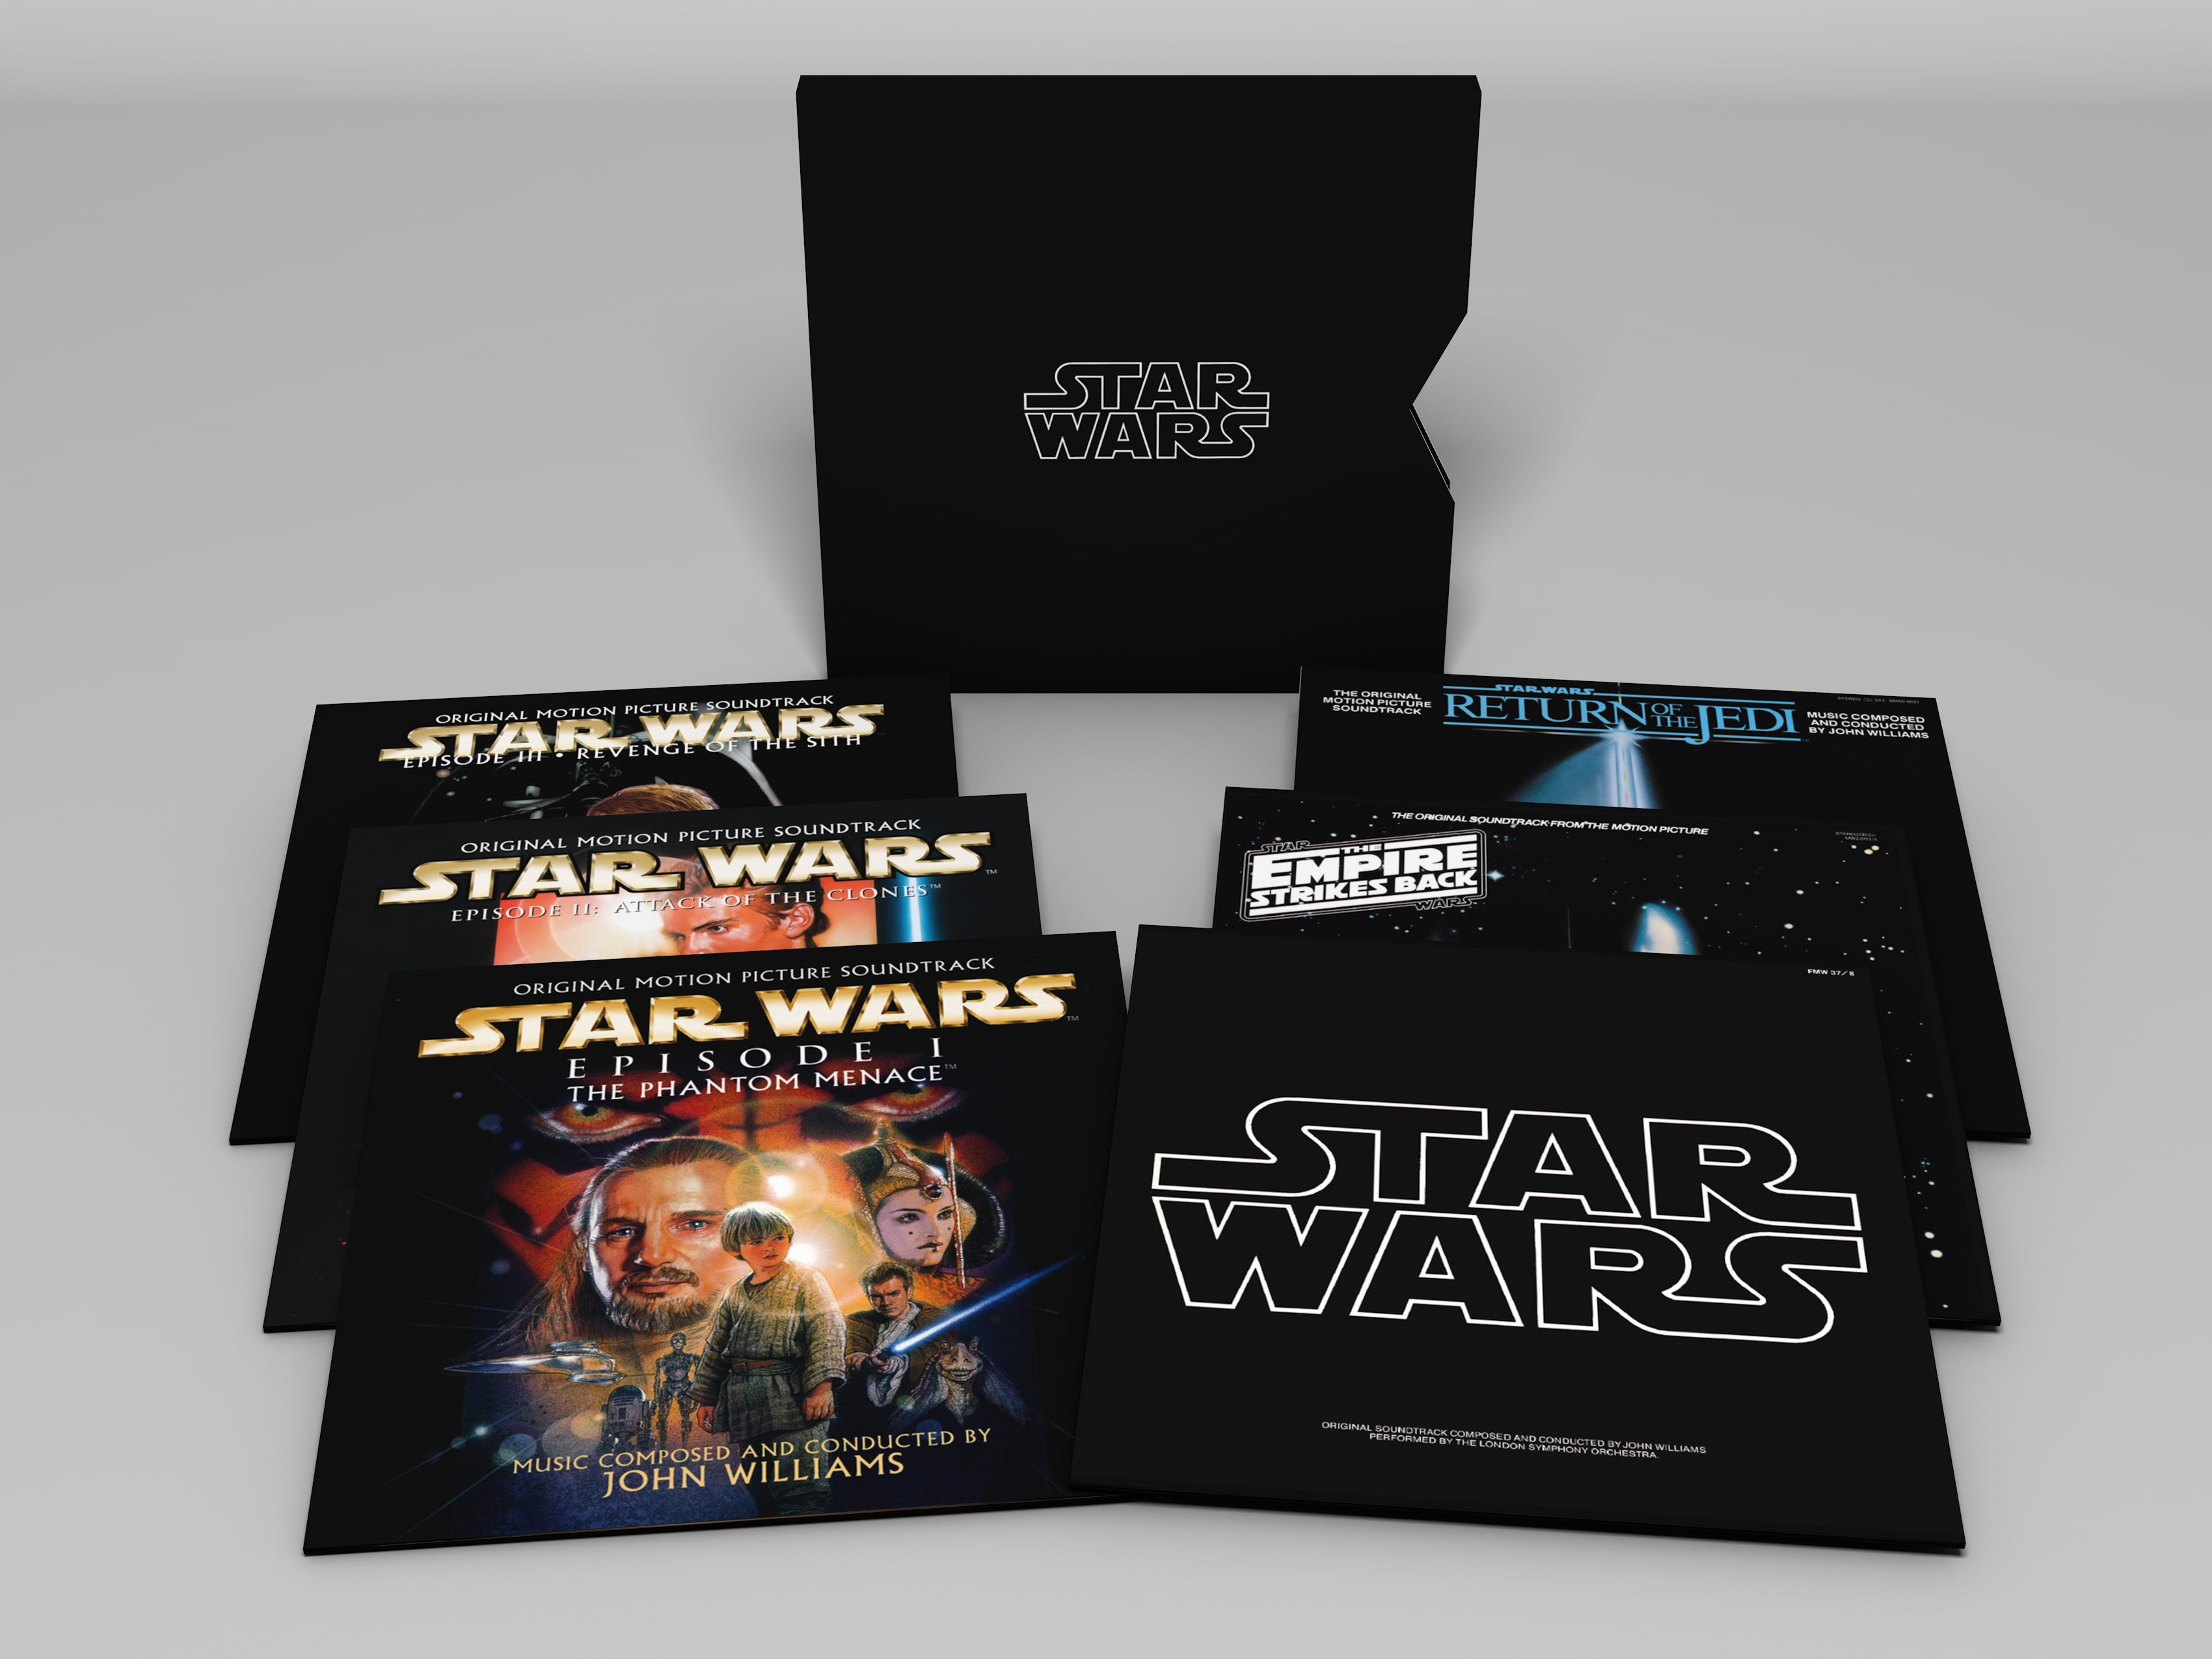 Star Wars: The Ultimate Vinyl Collection